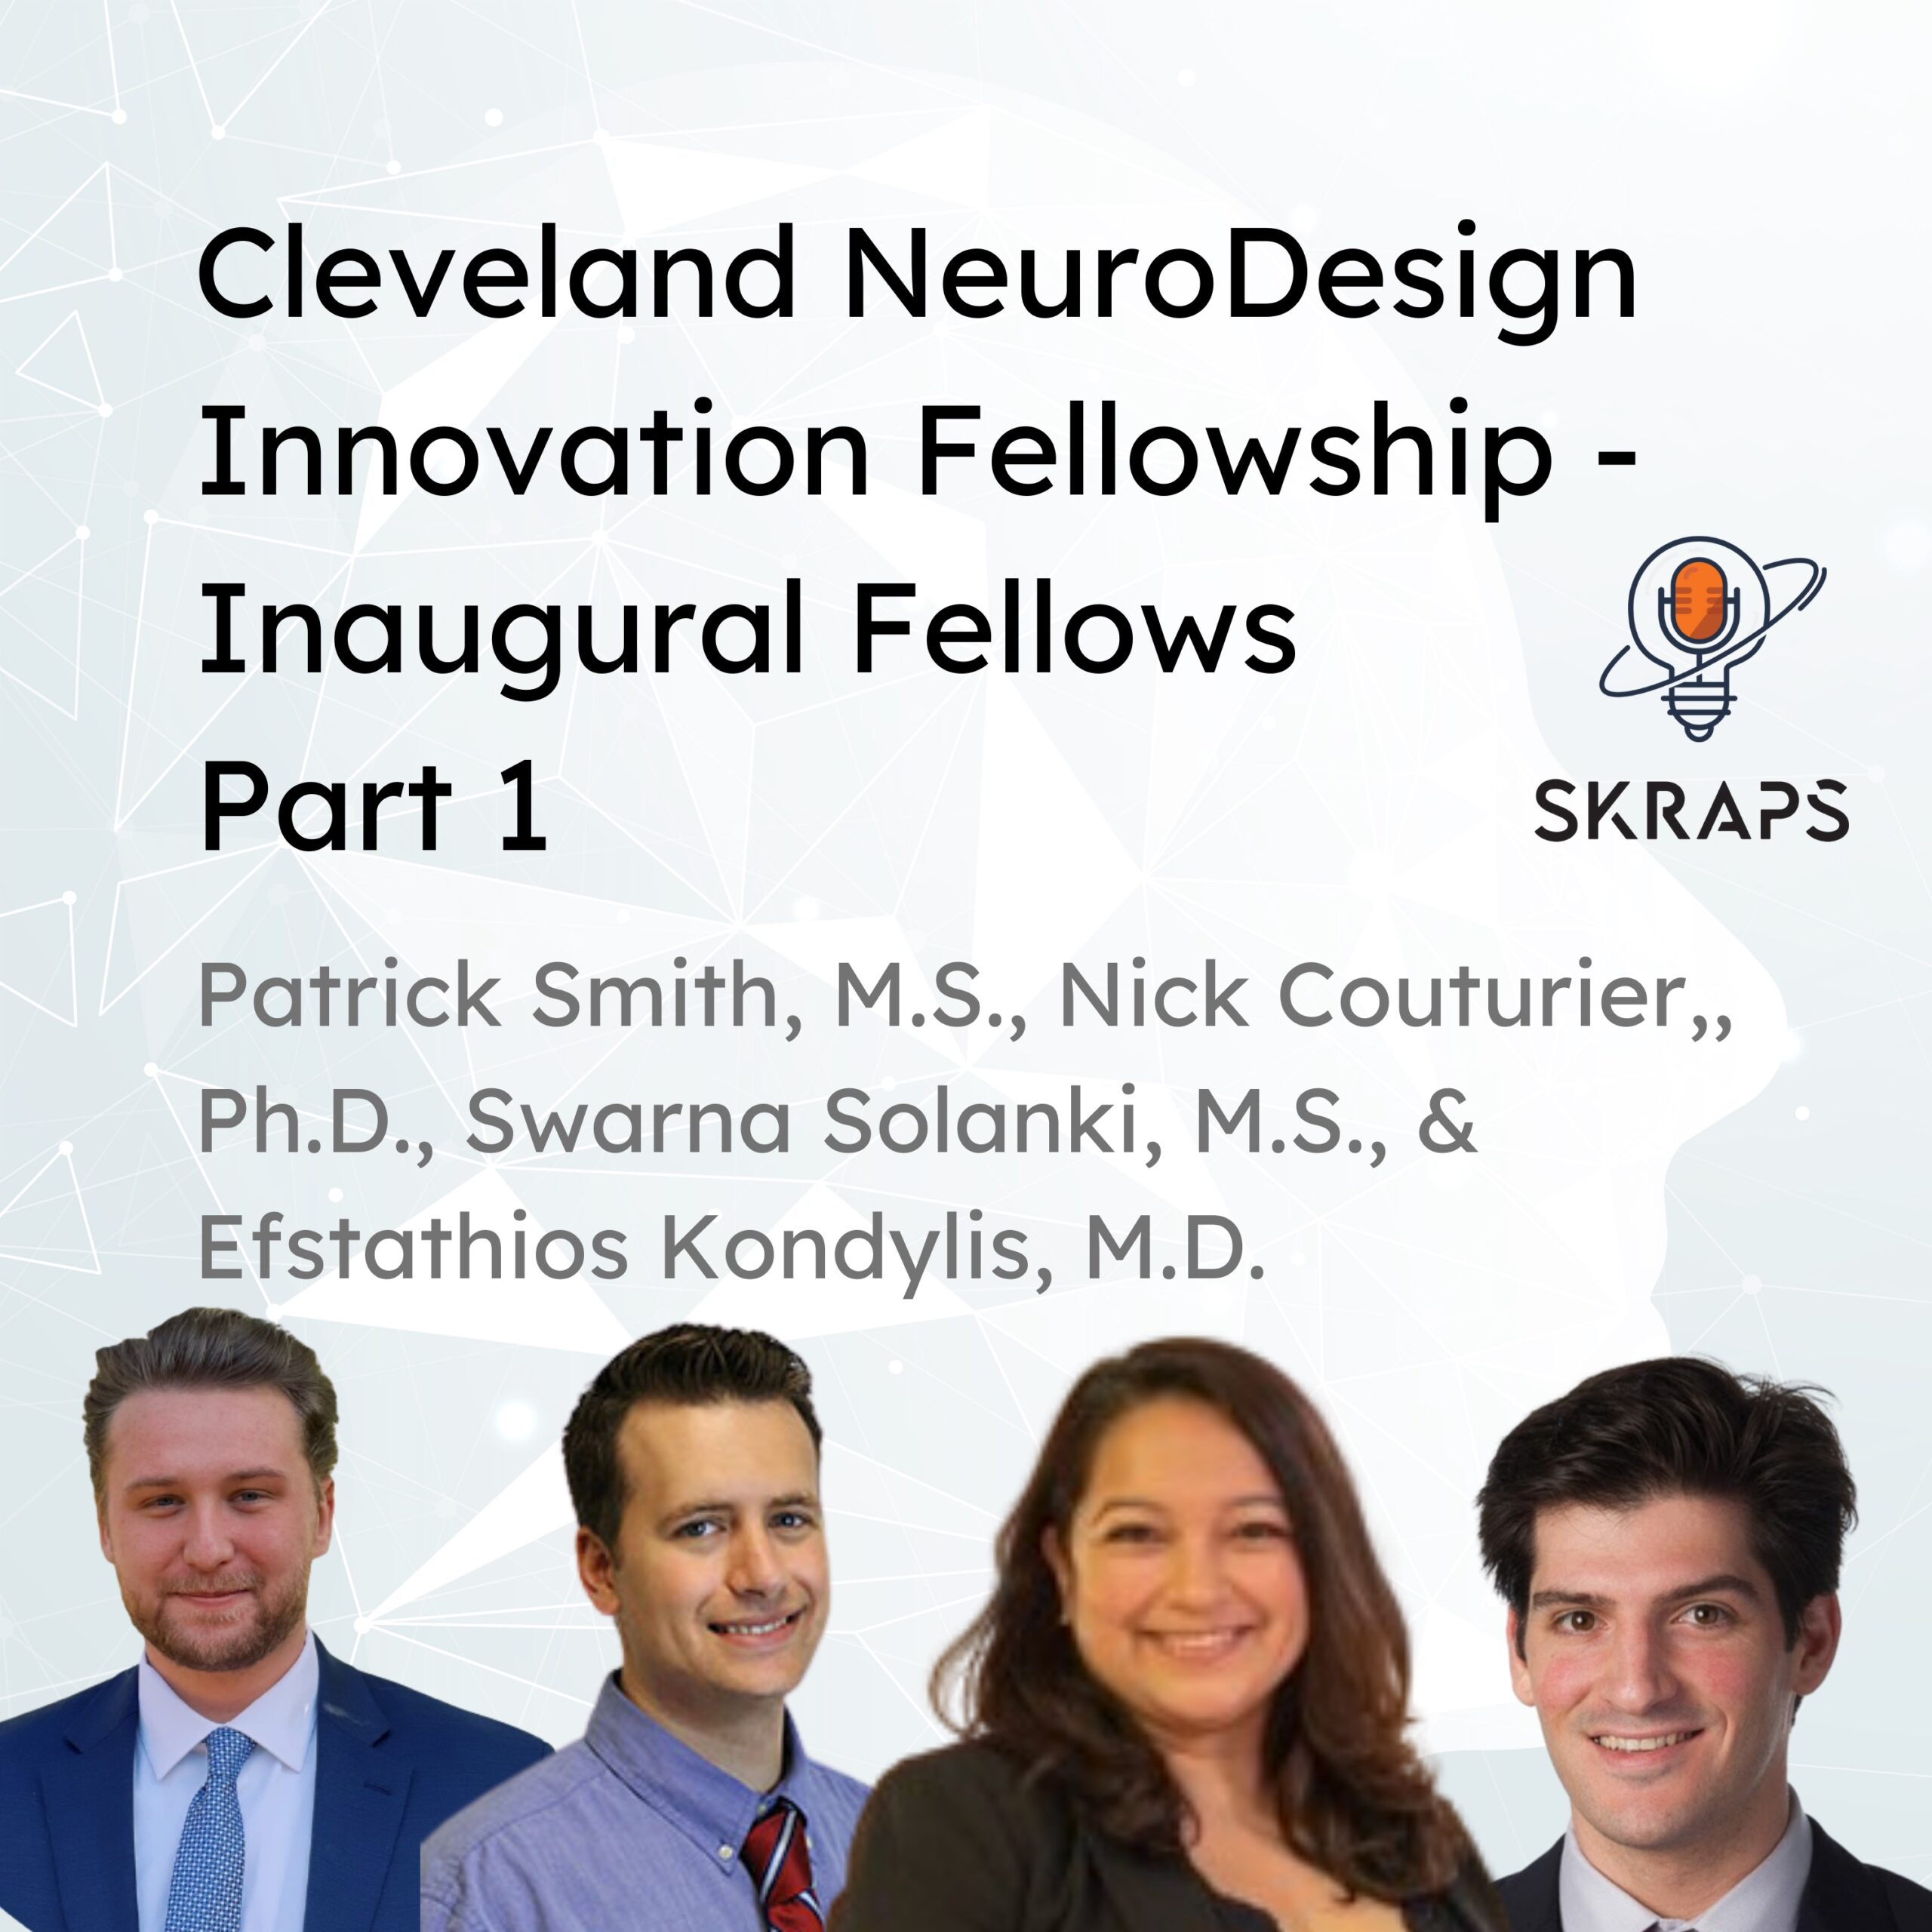 Interview with the Cleveland NeuroDesign Fellows